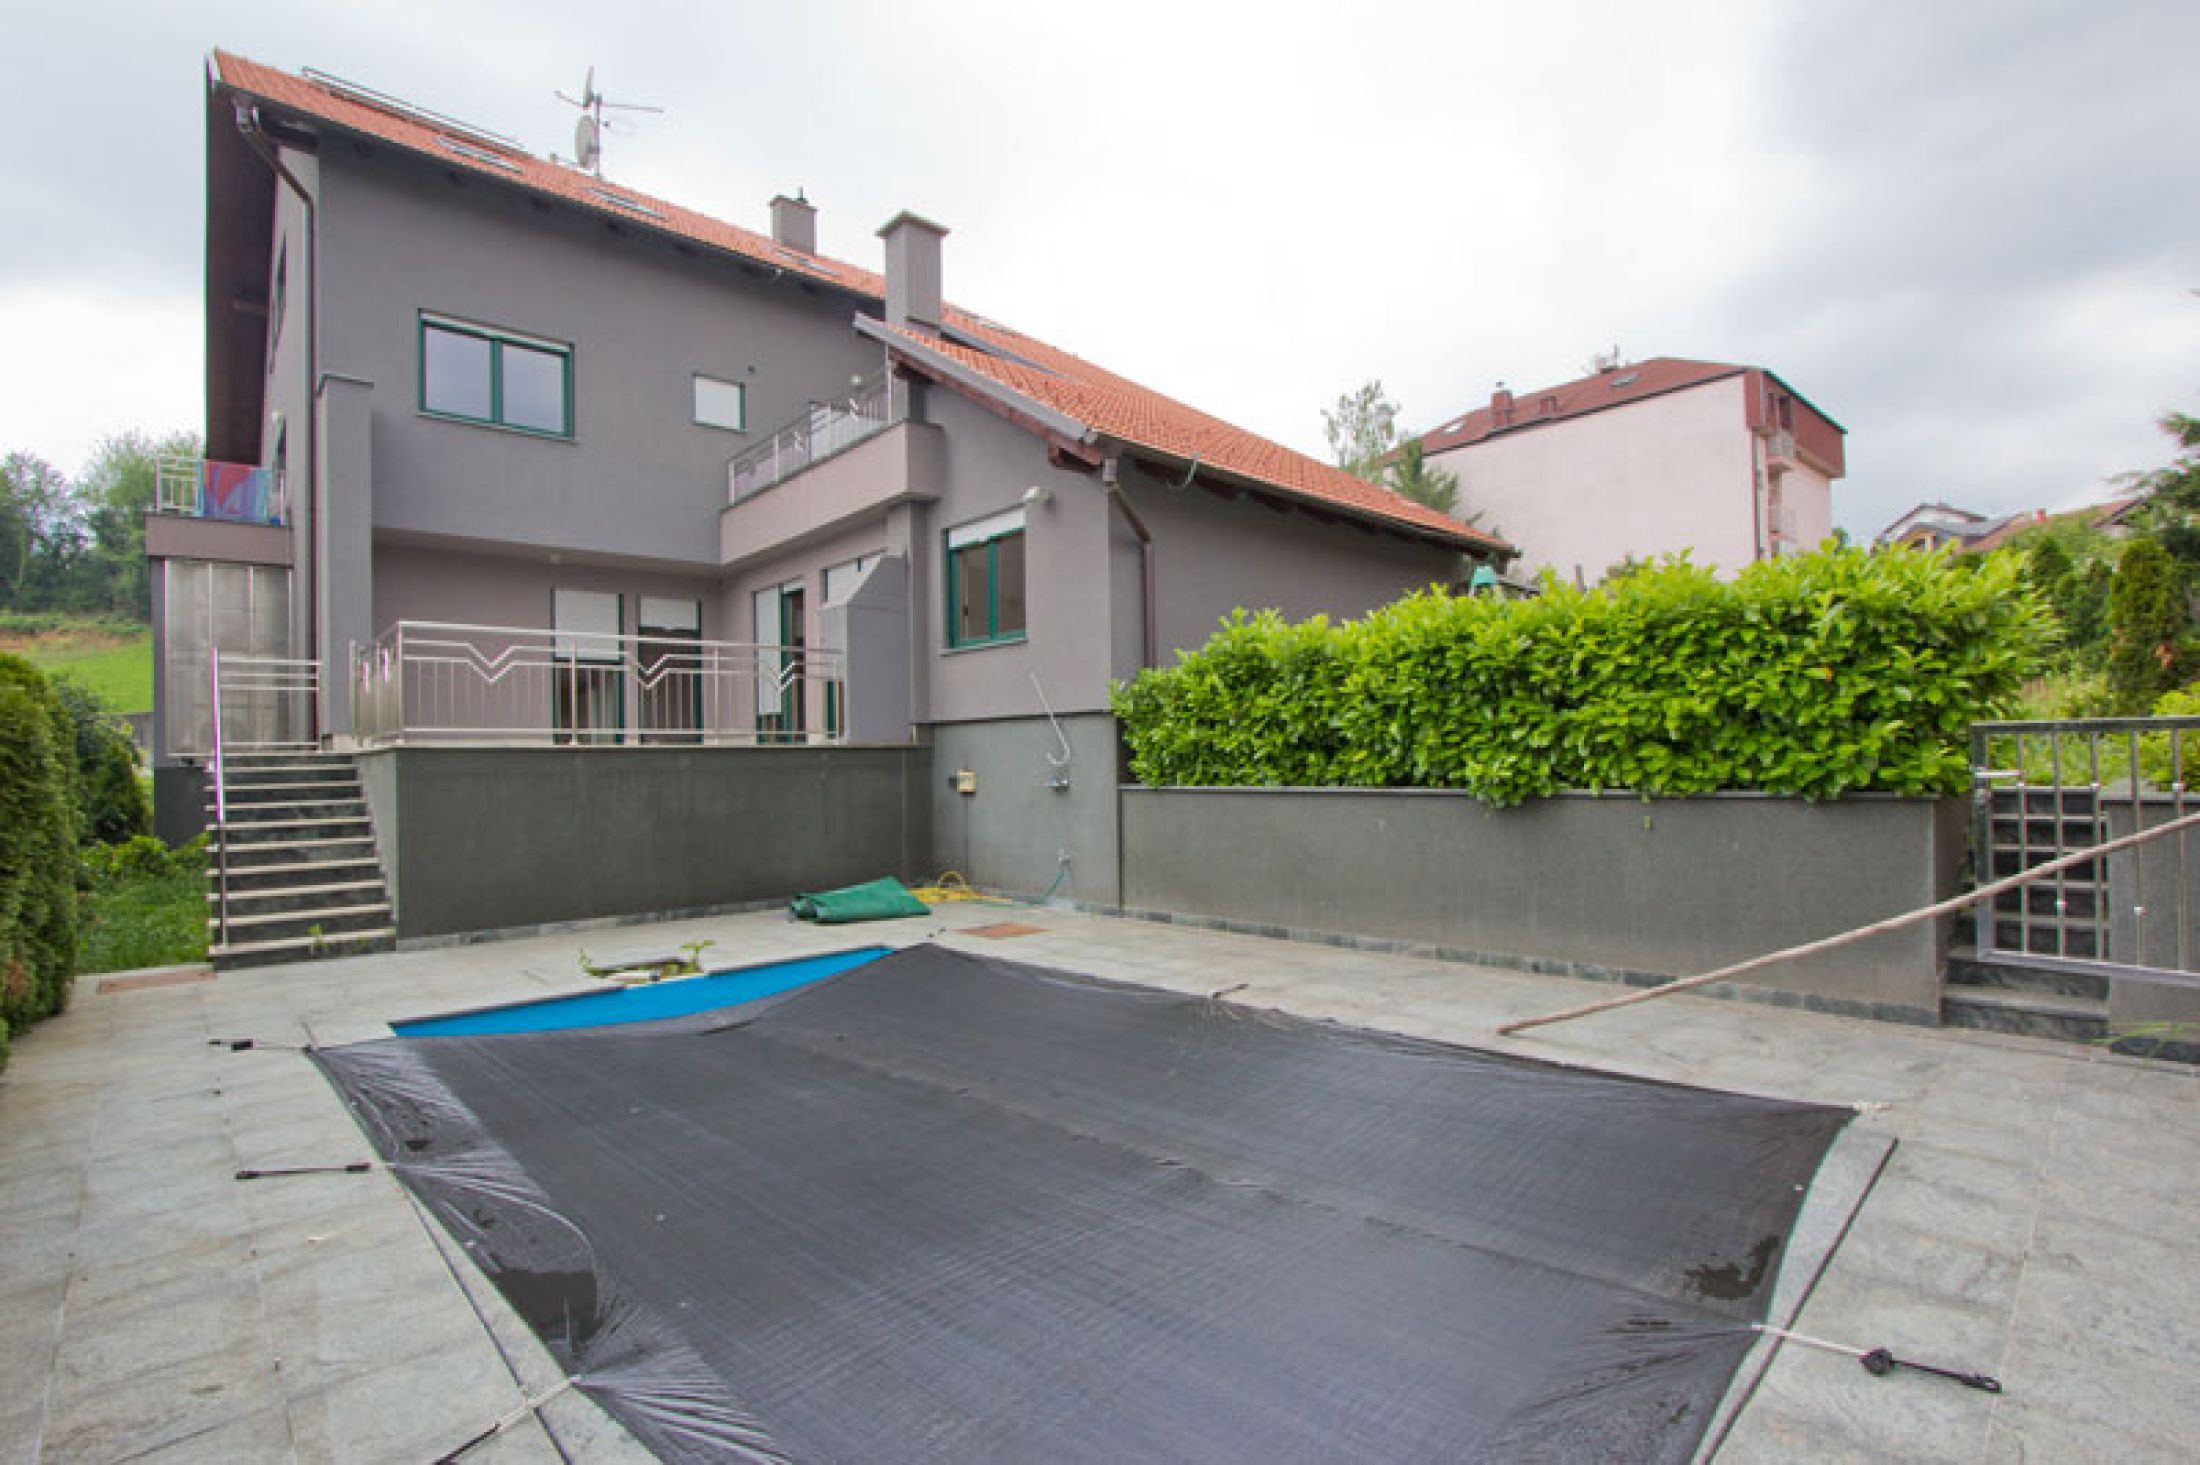 TWO STOREY WITH POOL.